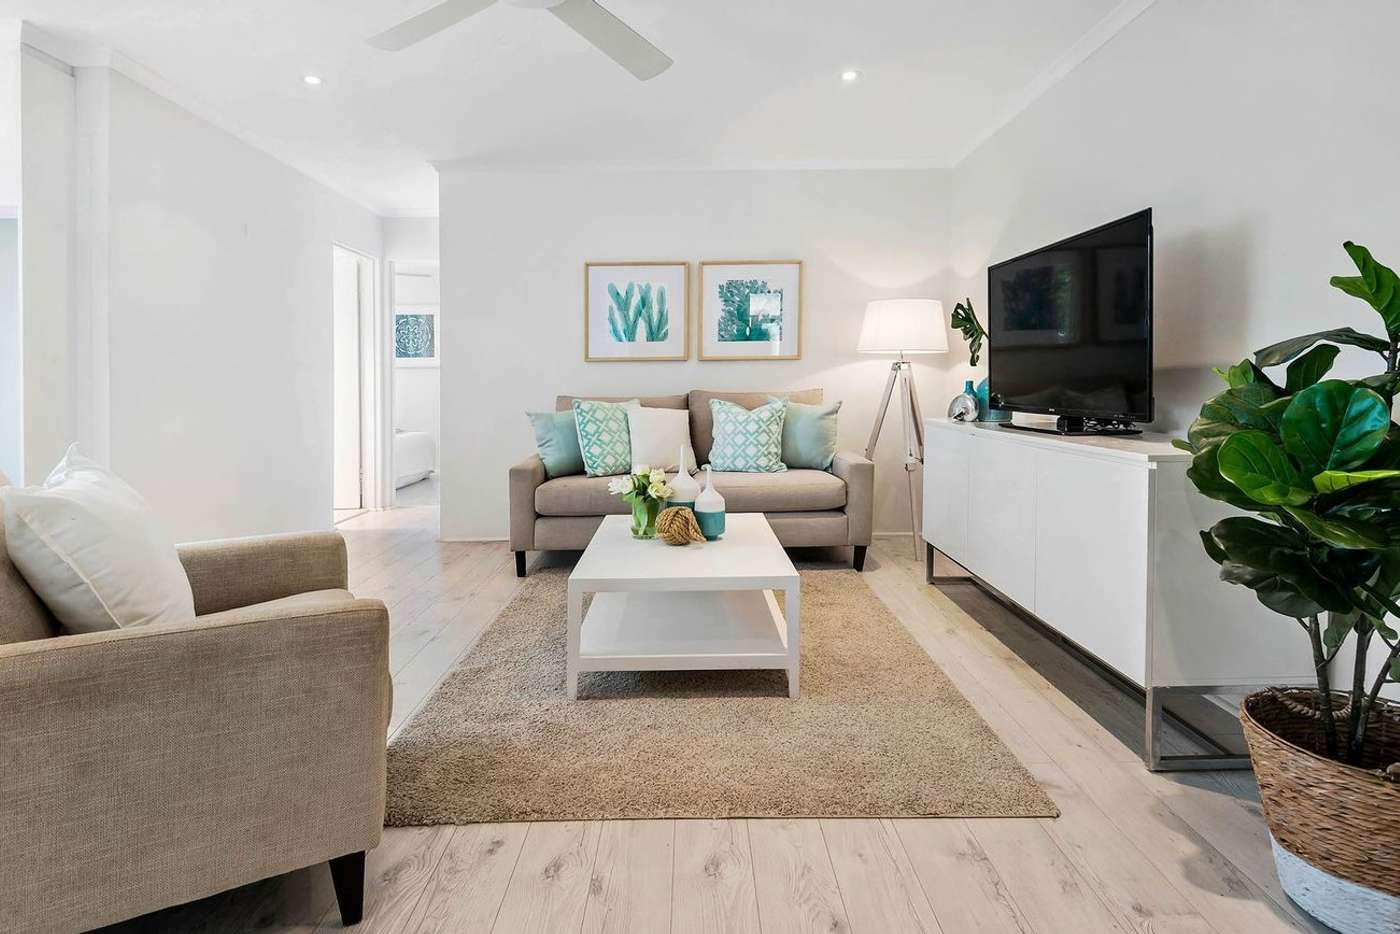 Main view of Homely apartment listing, 1/7 Ilikai Place, Dee Why NSW 2099